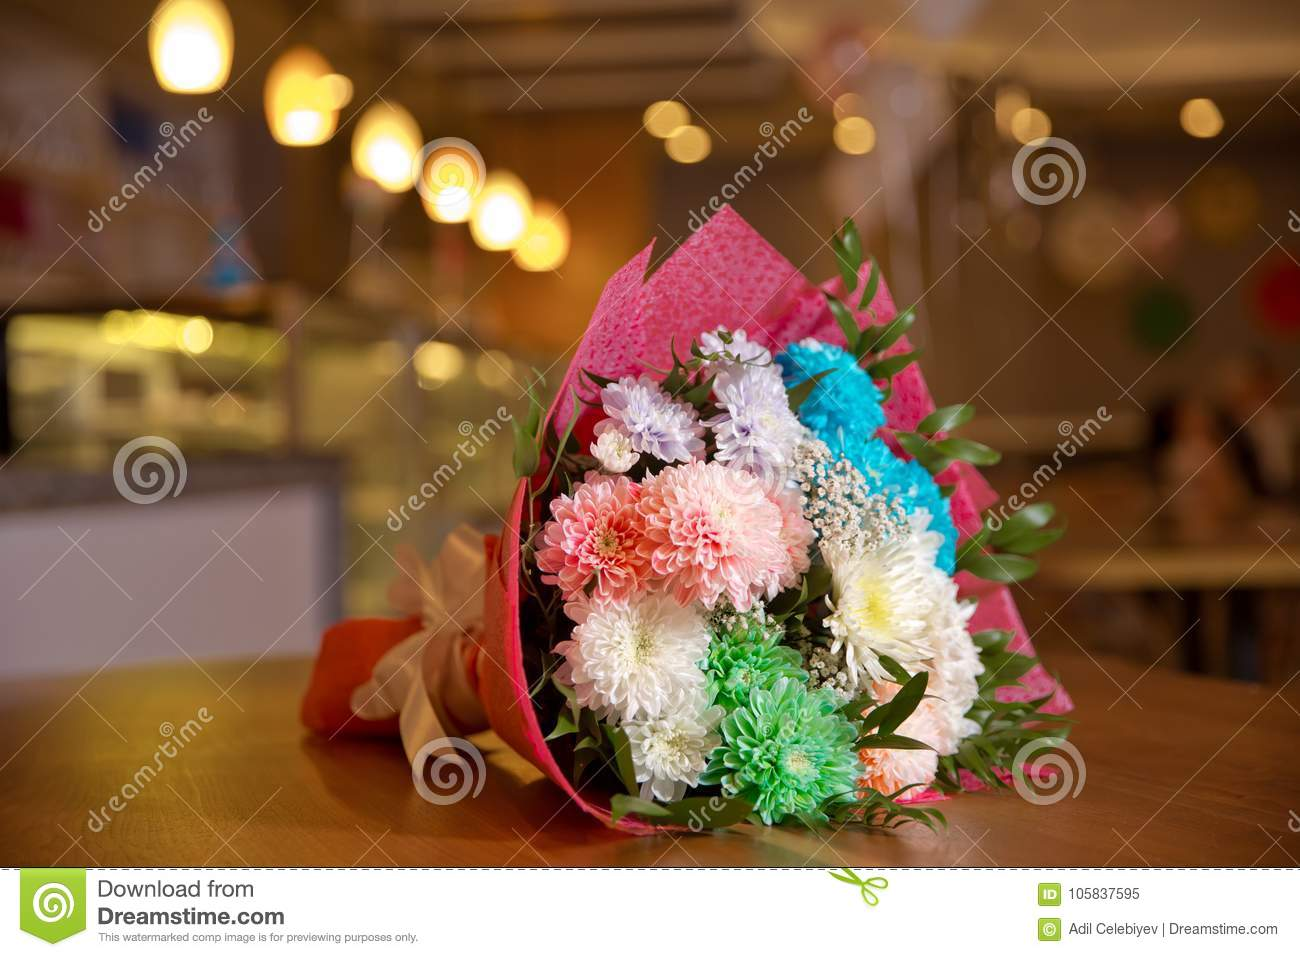 Colored birthday flower bouquet. Bouquet of colorful fresh freesia on a wooden background